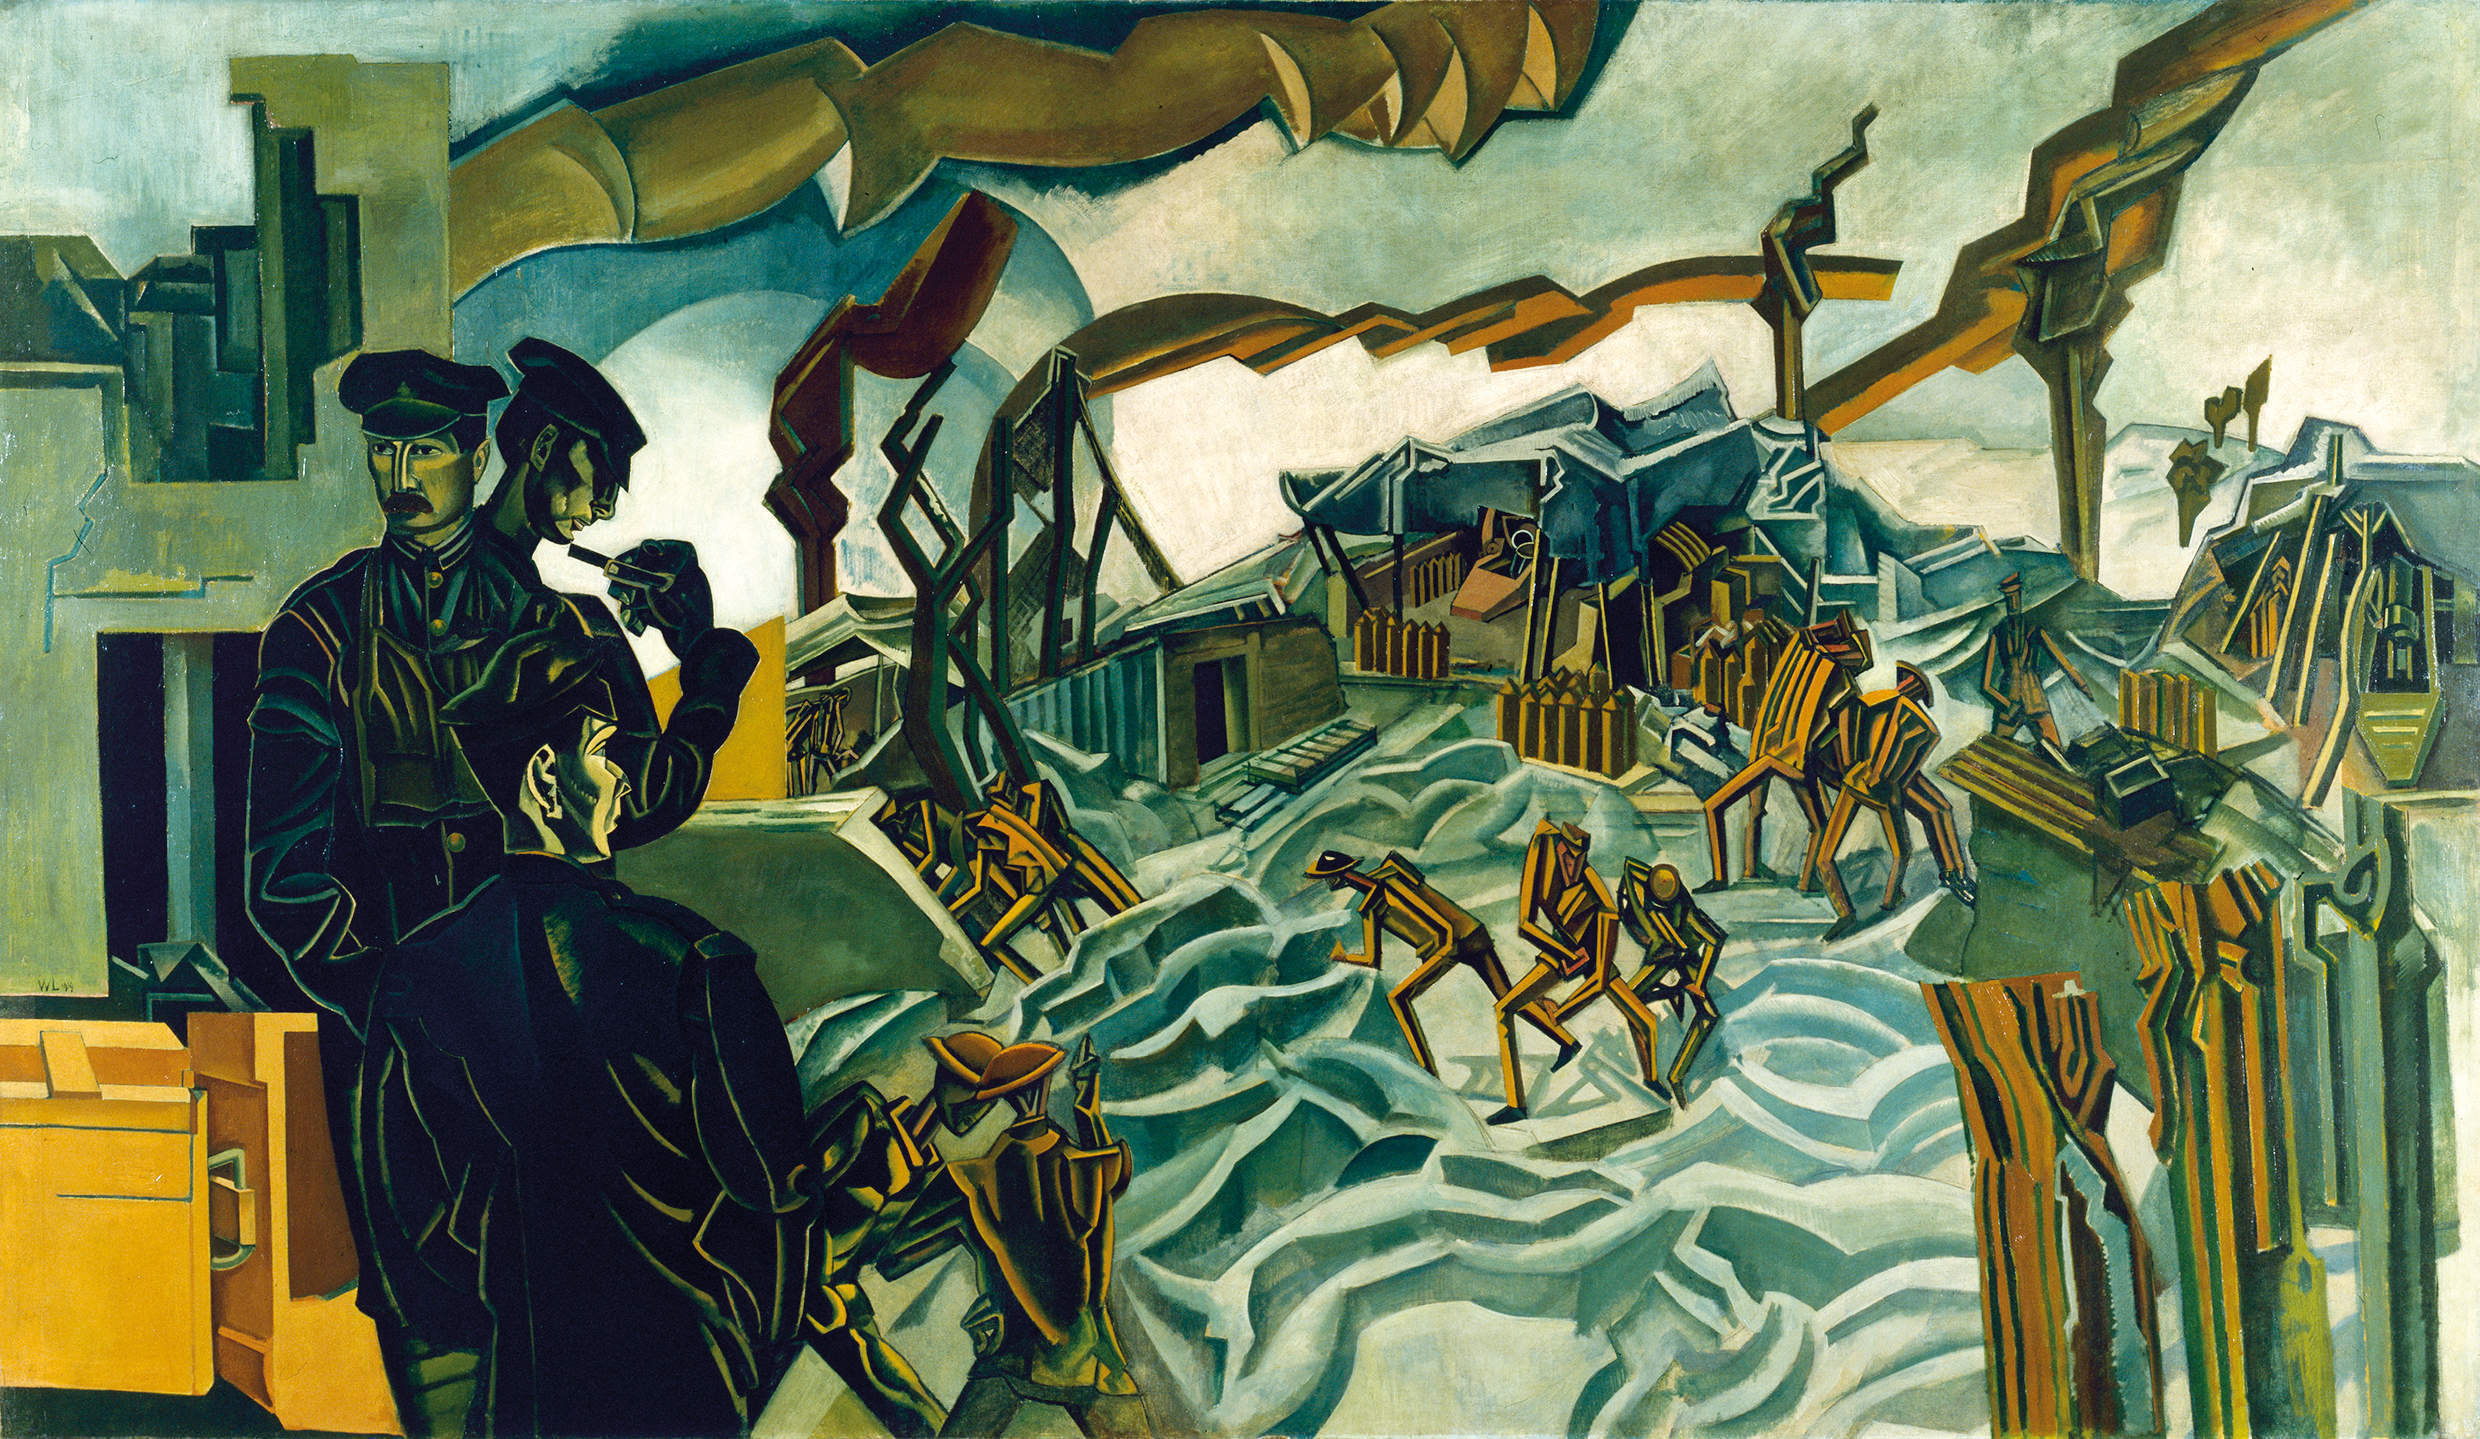 The art of Wyndham Lewis is hard to love but impossible to ignore